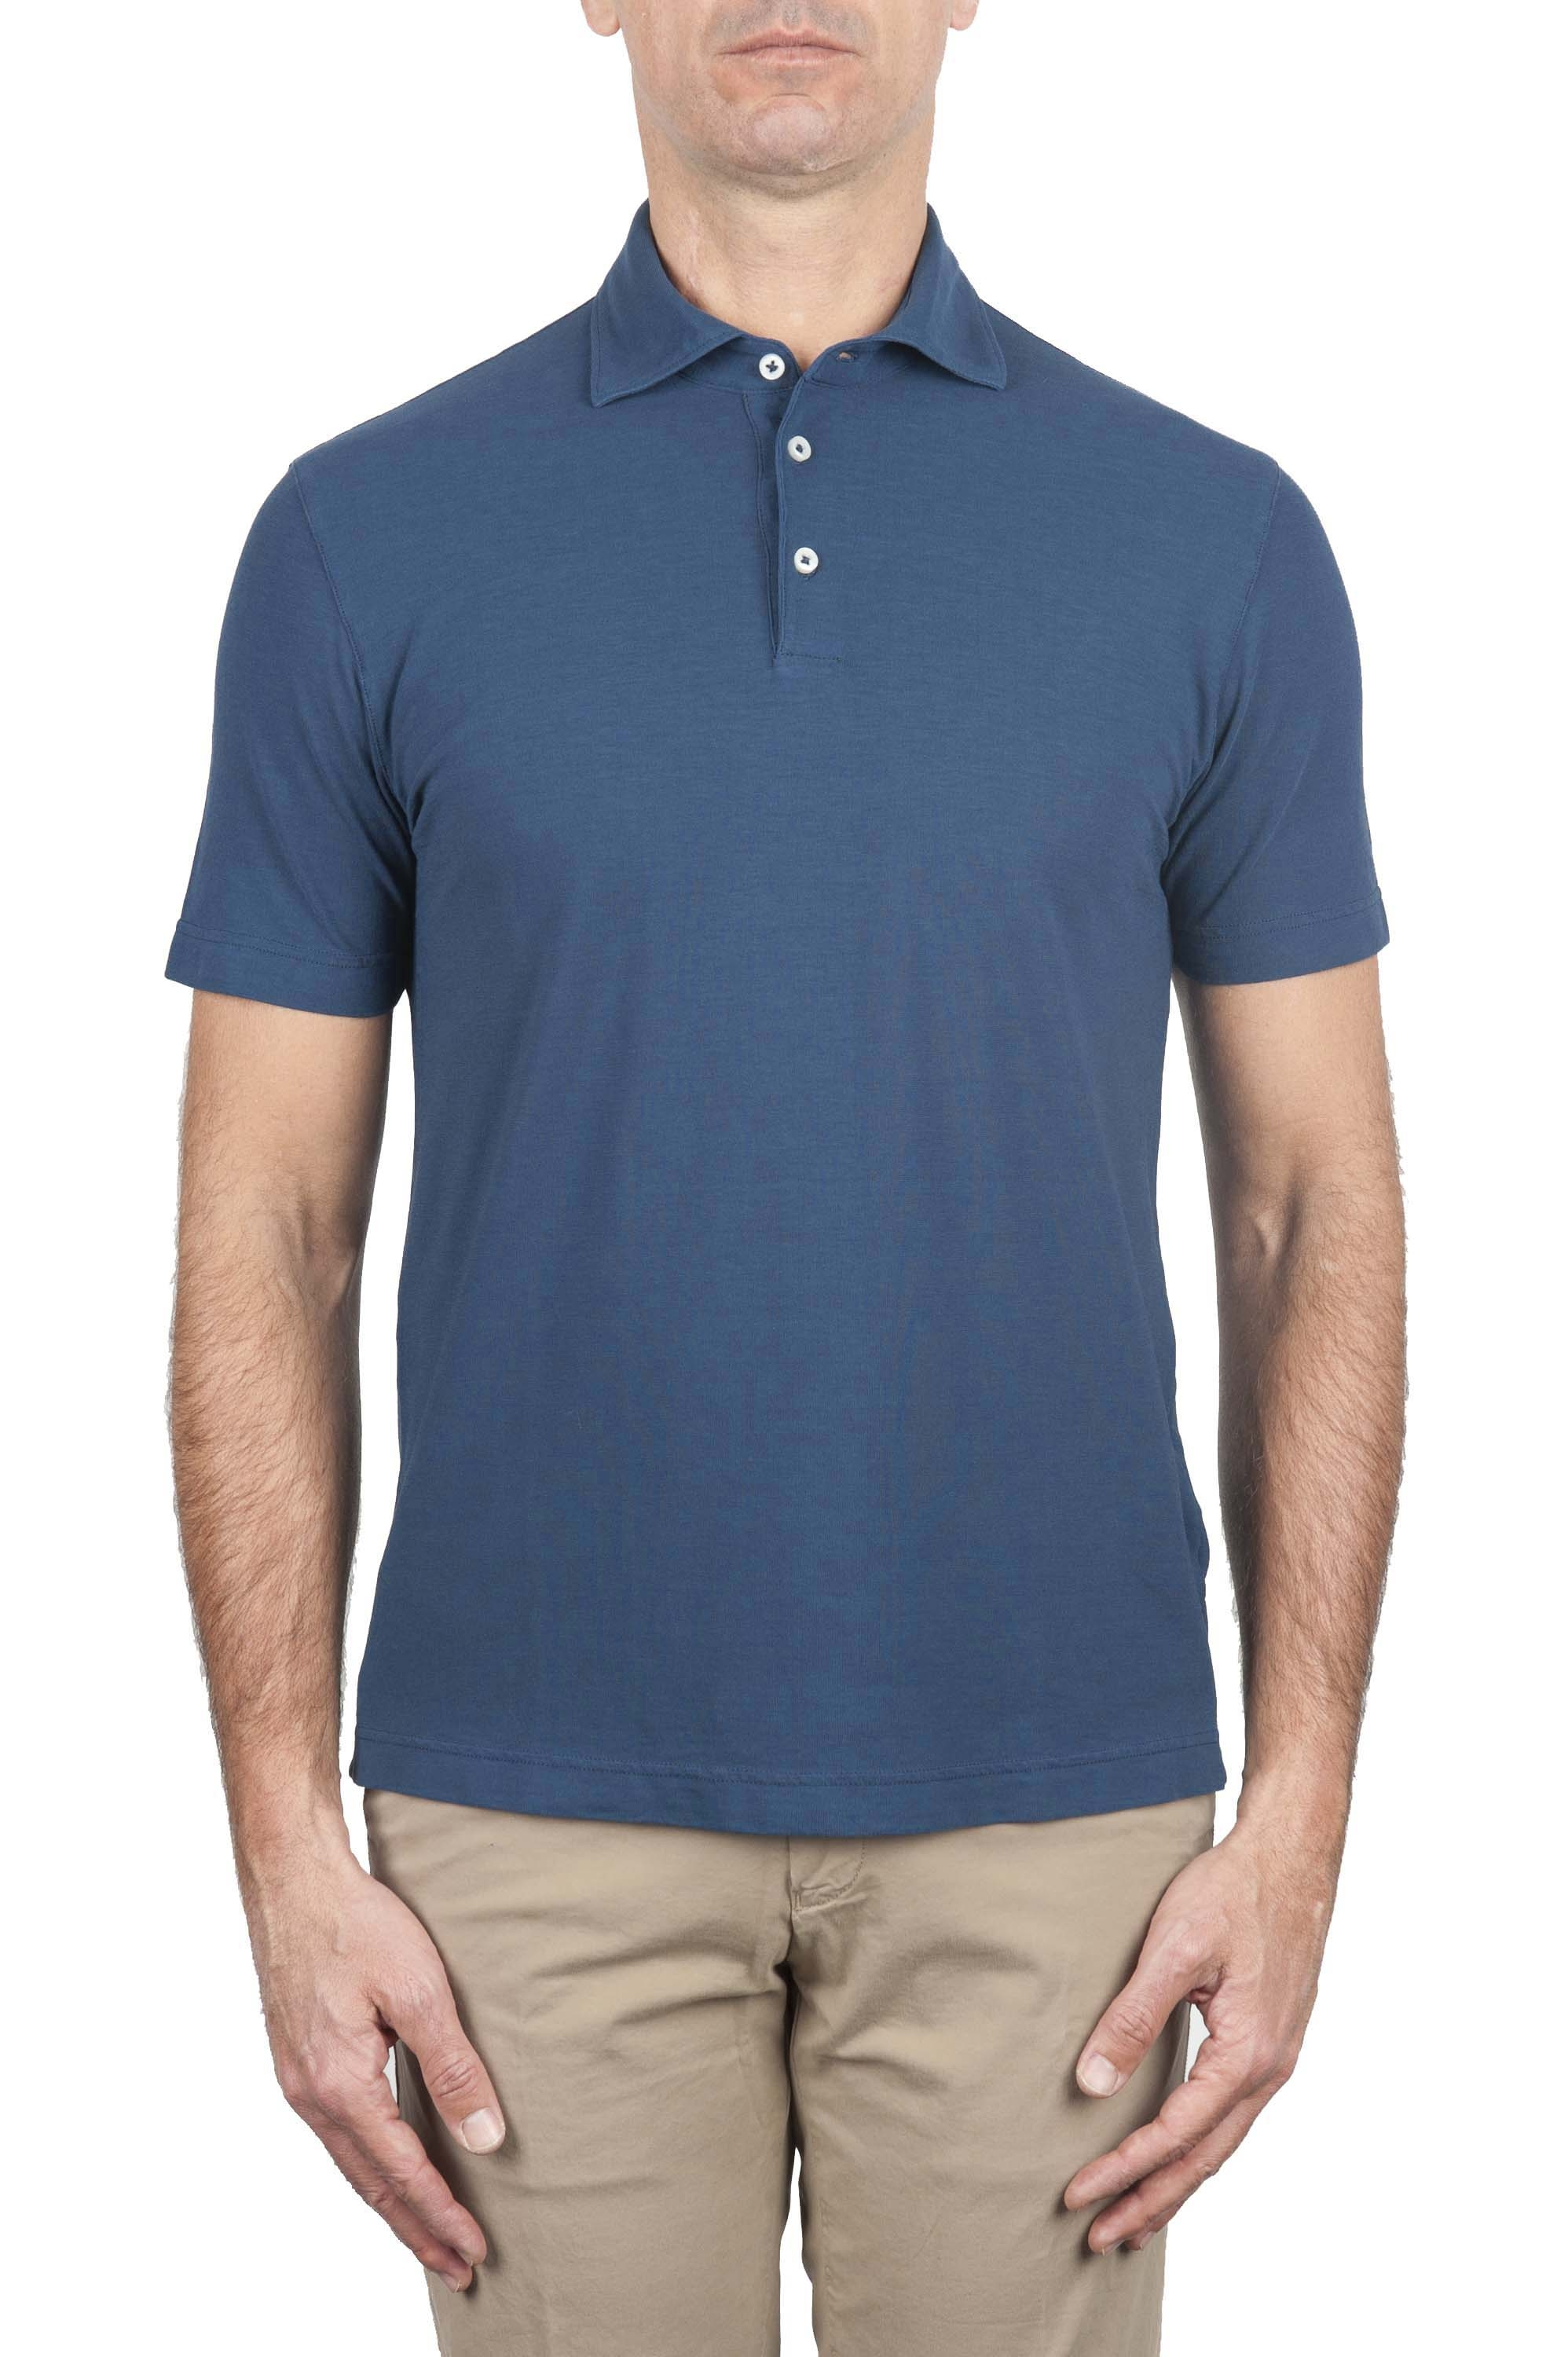 SBU 01688 Classic short sleeve blue cotton crepe polo shirt 01